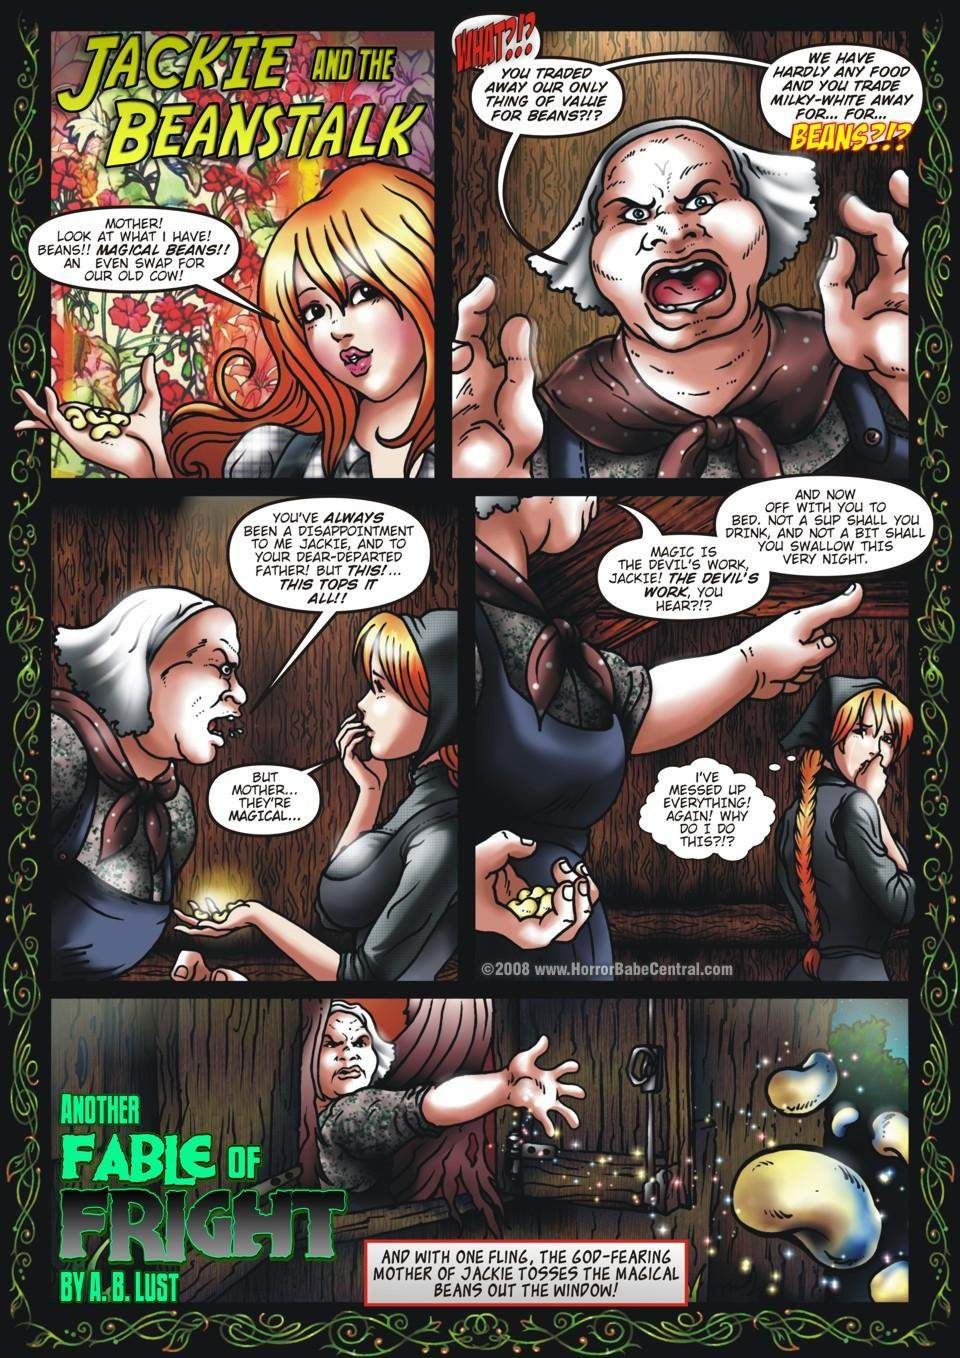 SureFap xxx porno Jack and the Beanstalk - [HorrorBabeCentral][A.B. Lust] - Another Fable of Fright - Jackie and the Beanstalk Part 1 of 3